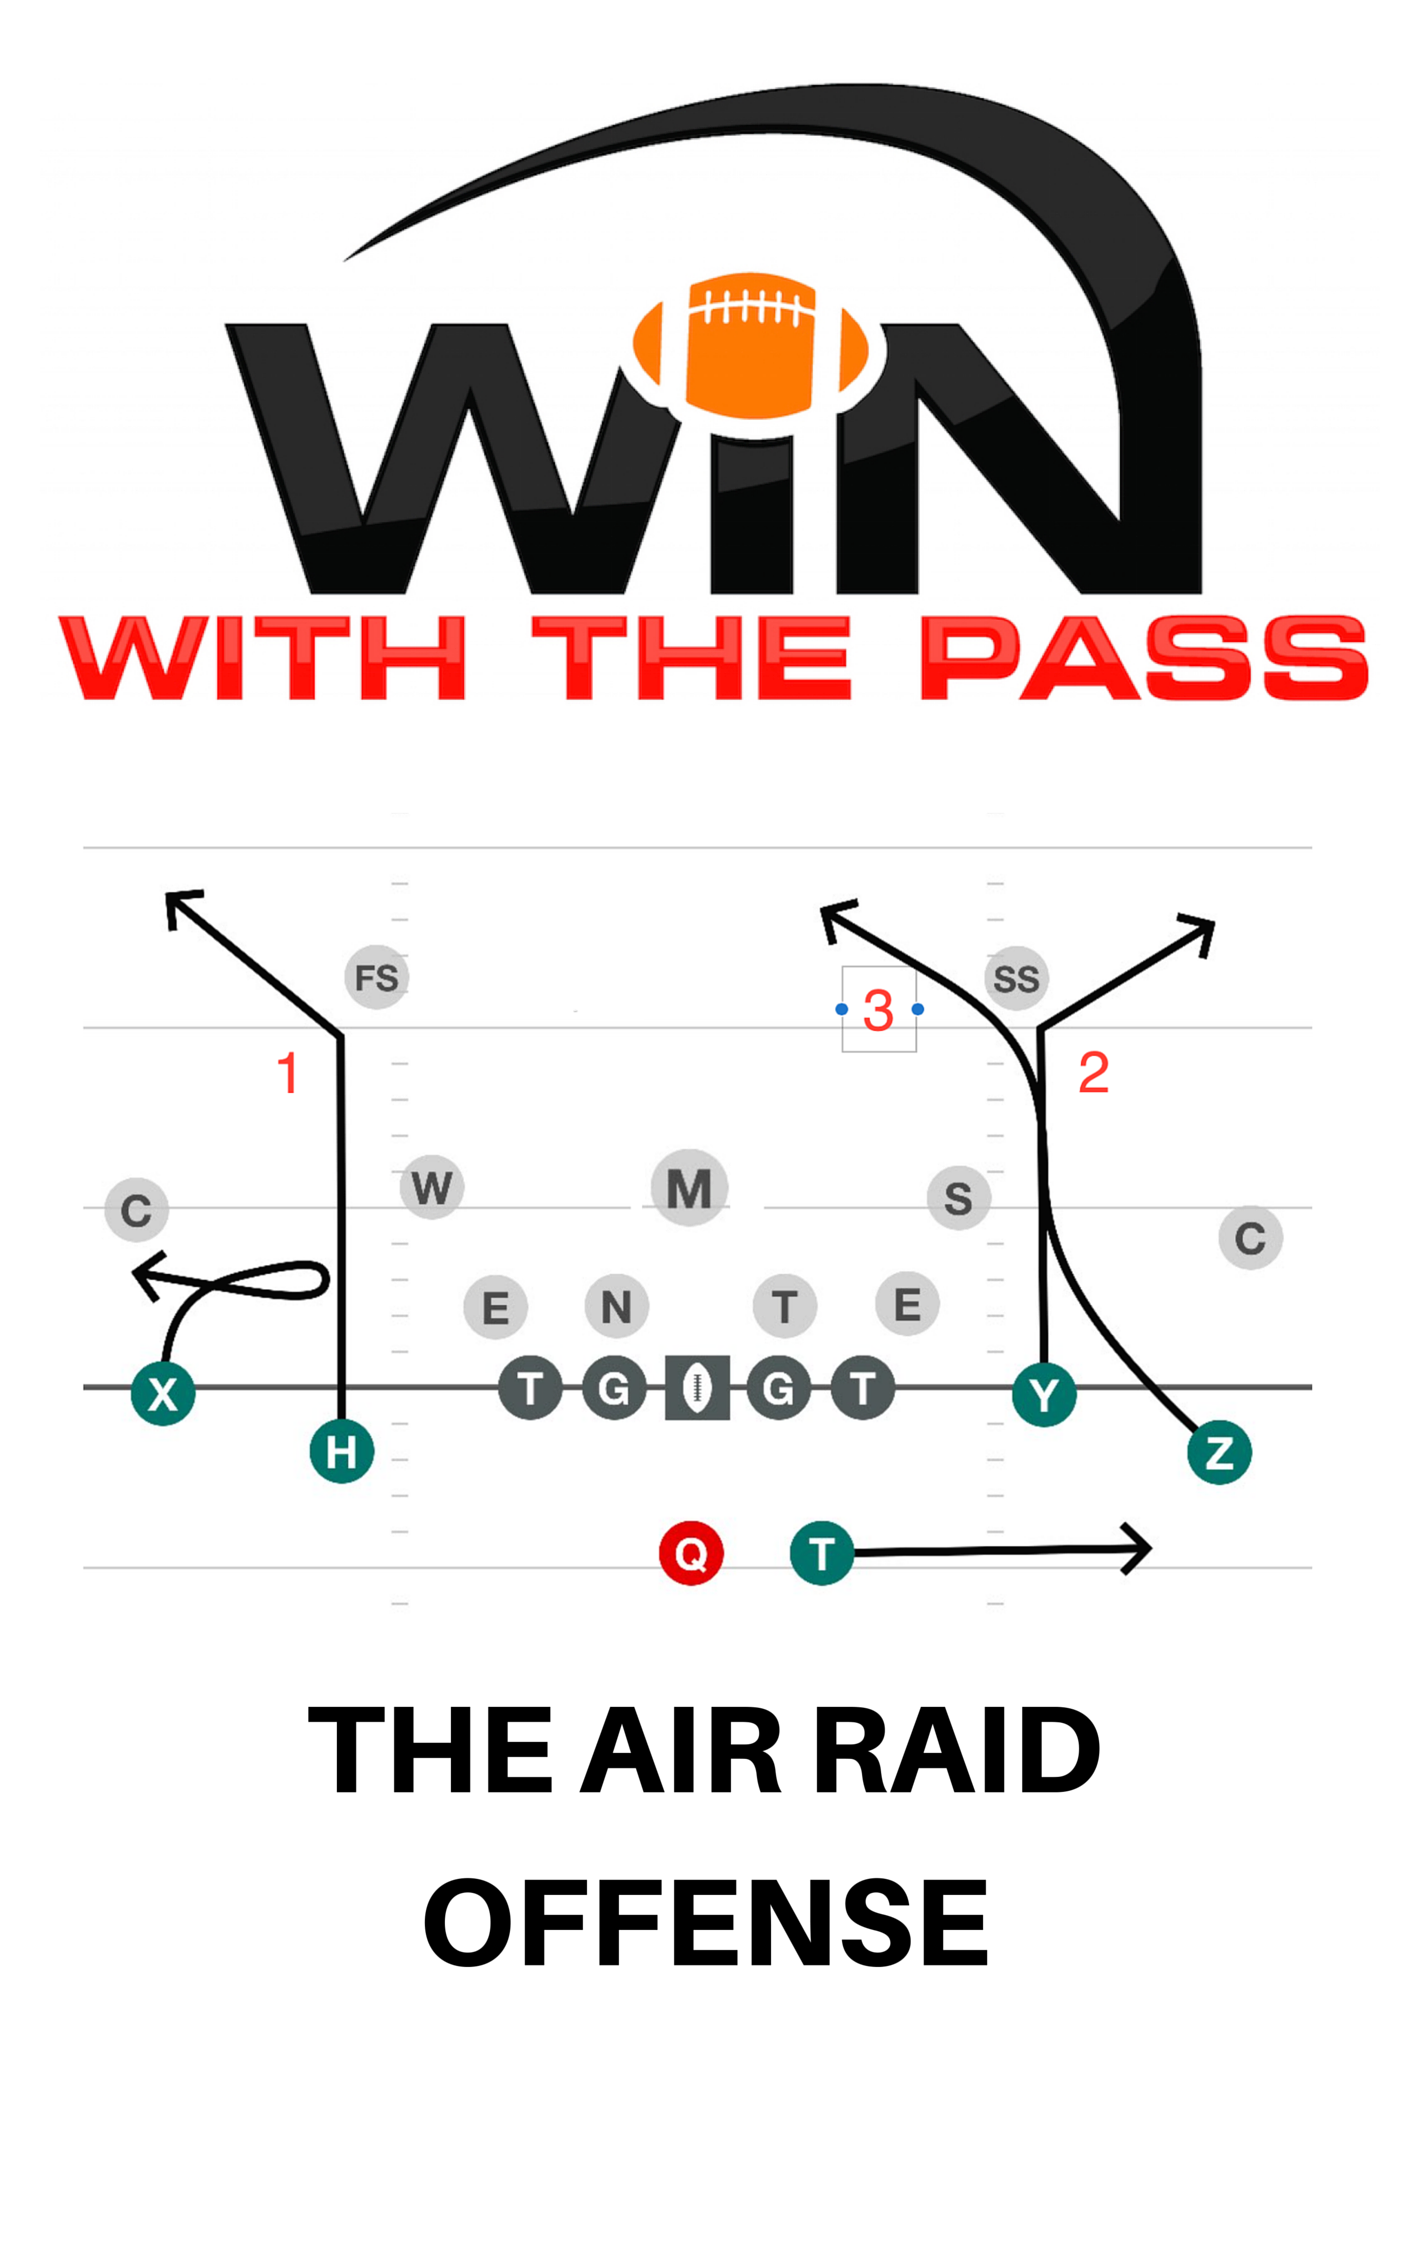 THE Air Raid Offense